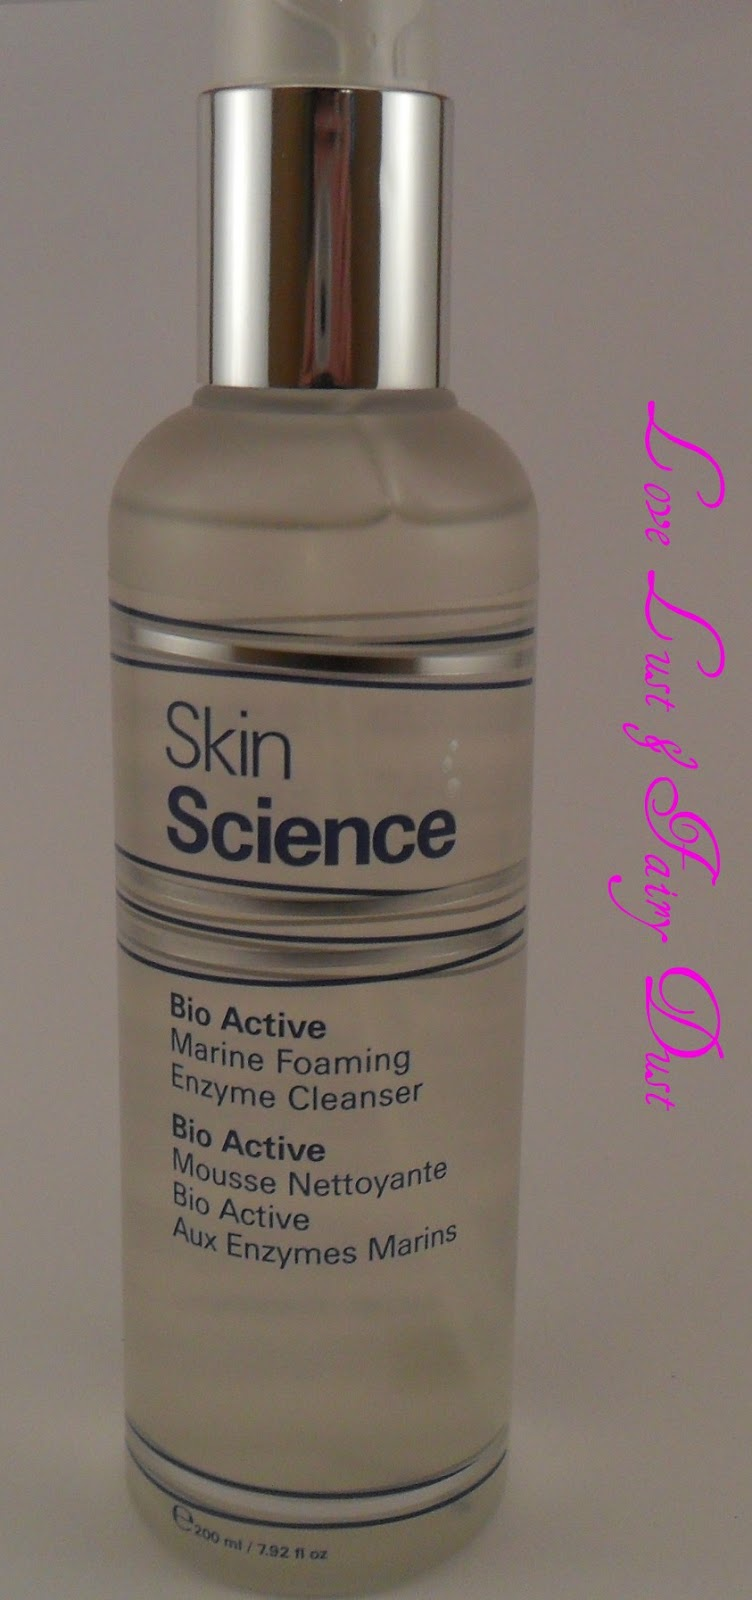 review of skin science bio active marine foaming enzyme cleanser